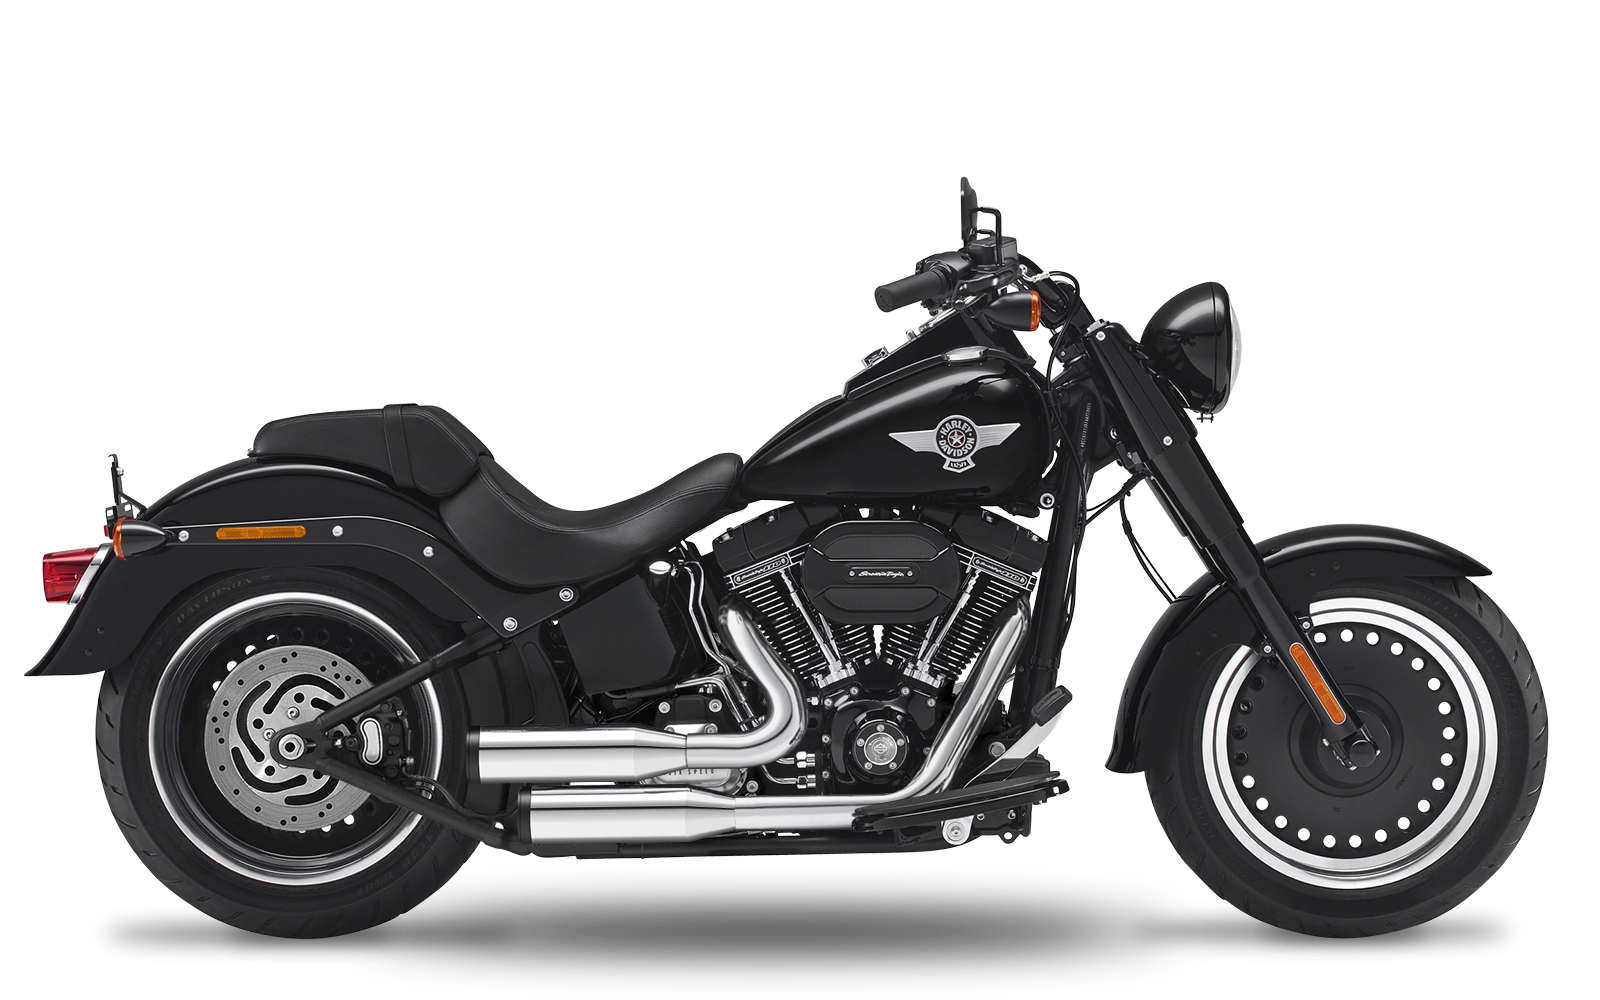 Softail - Fat Boy S - TC110 - 2016-2017 - Complete systems